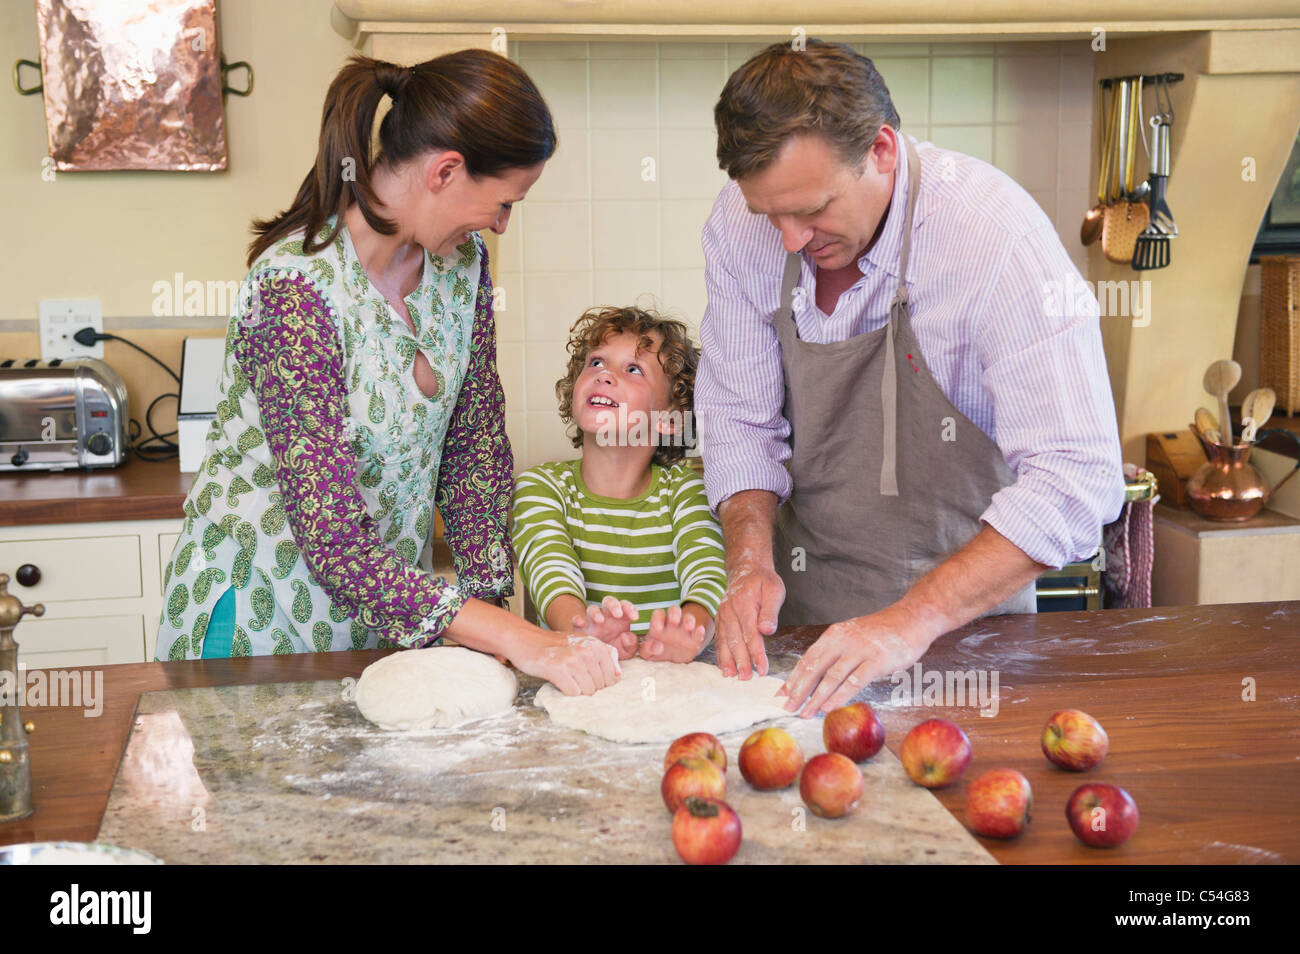 Cute little boy and his parents kneading dough at kitchen - Stock Image